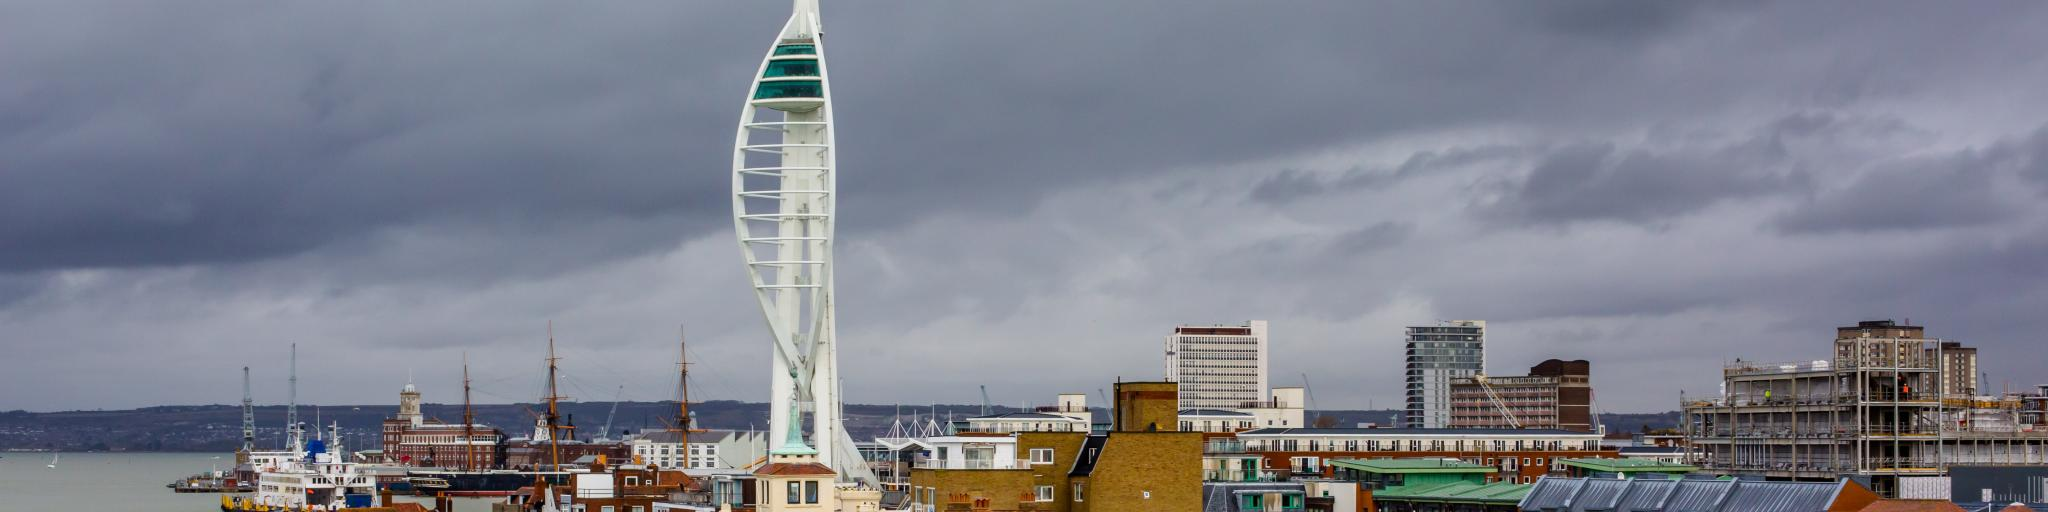 Spinnaker Tower, Portsmouth, England